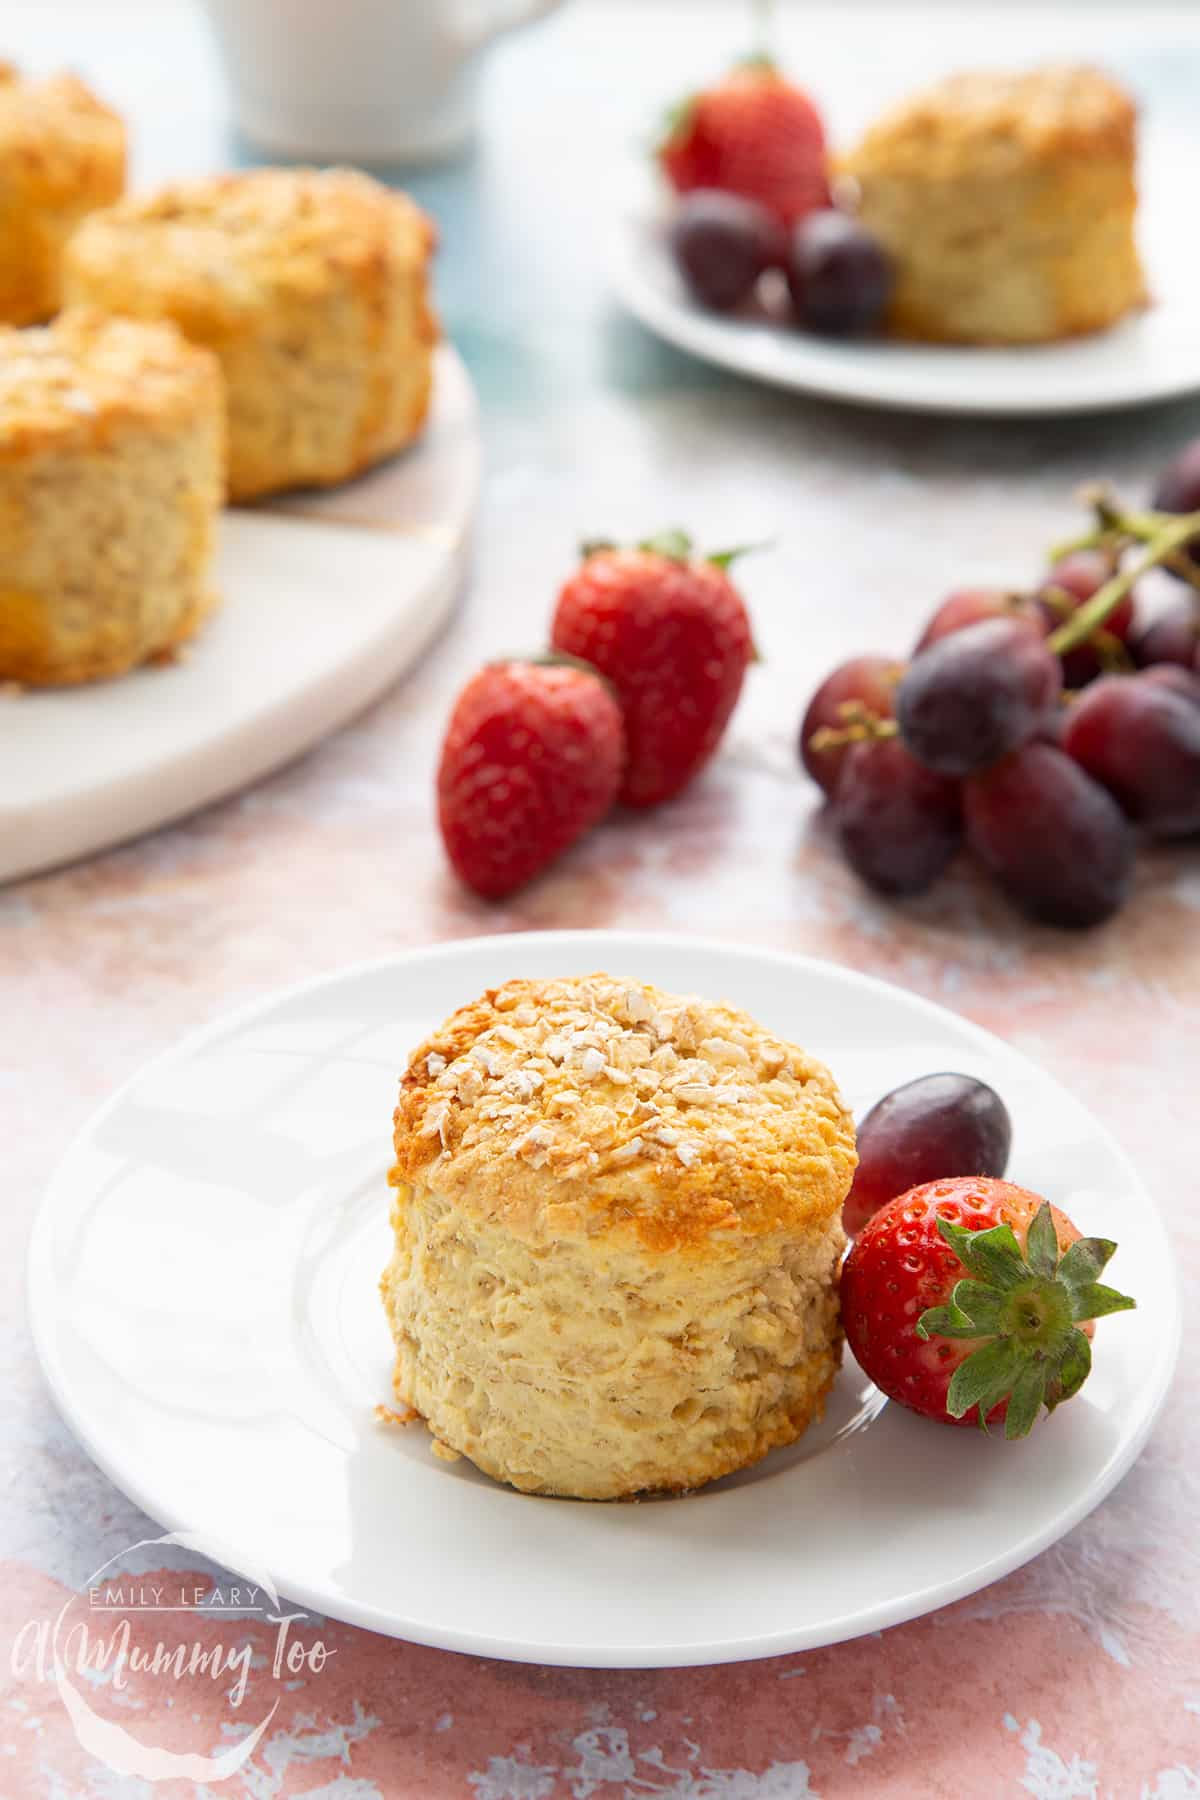 An oatmeal scone on a white plate with some fruit. More oatmeal scones sit on a board in the background.